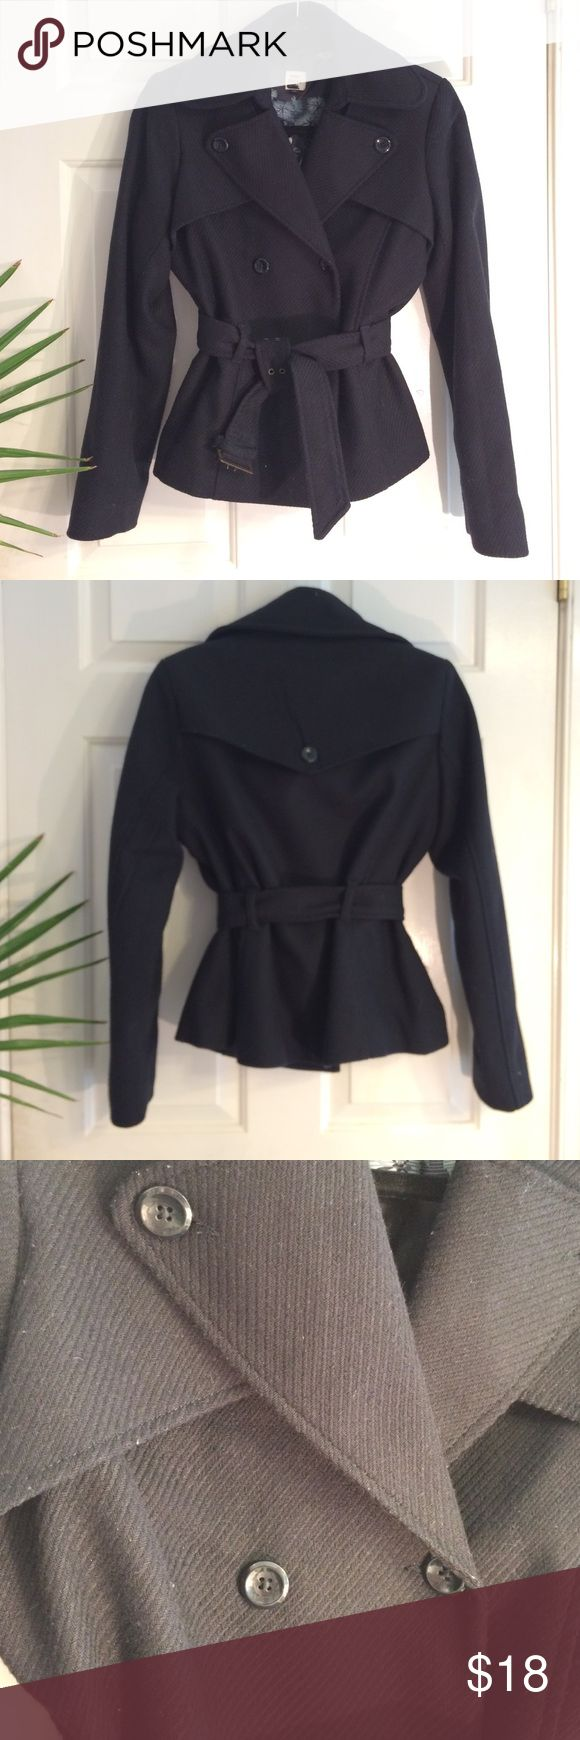 Old Navy Pea Coat Black Old Navy Pea Coat. Belted closure. Good used condition. Old Navy Jackets & Coats Pea Coats